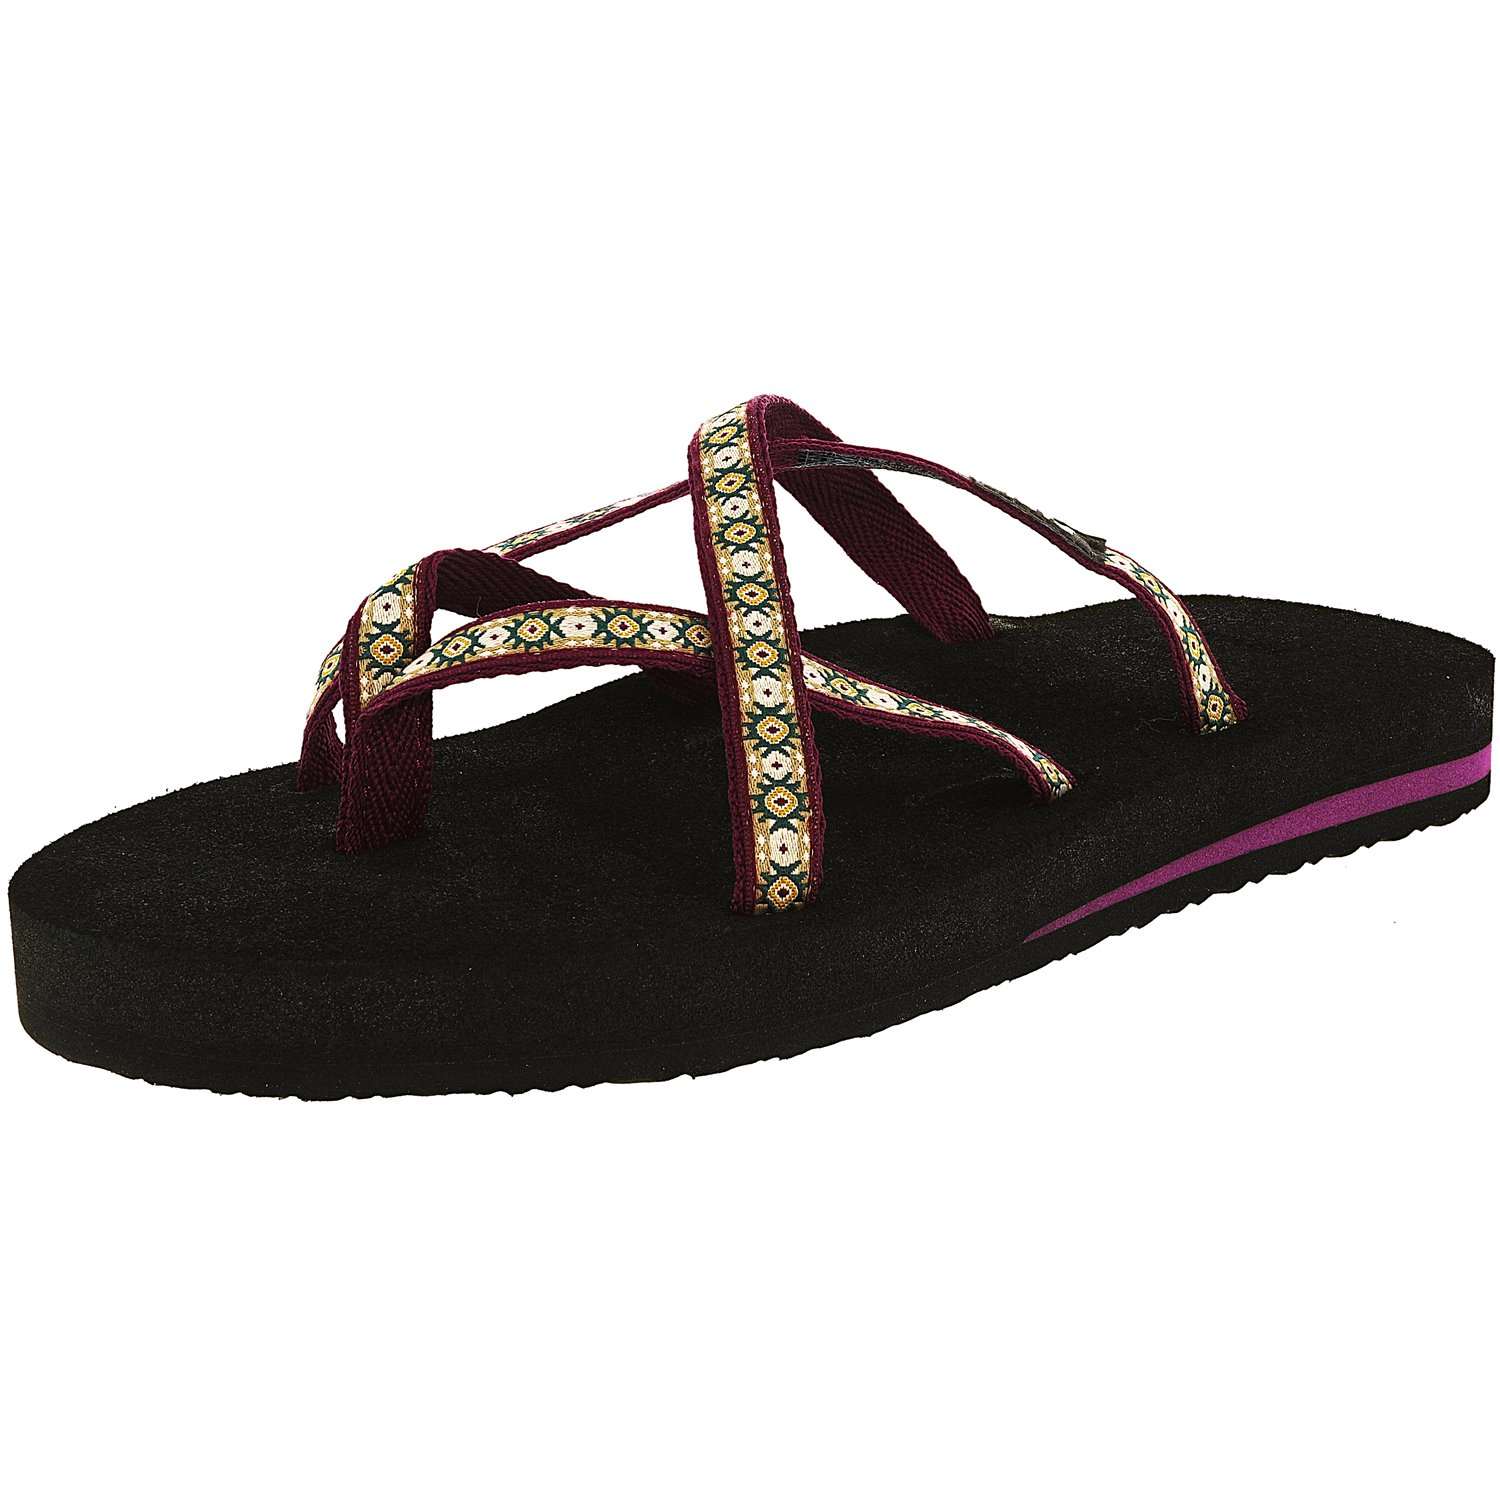 Teva Women's Olowahu Lola Dark Purple Ankle-High Polyester Sandal - 6M